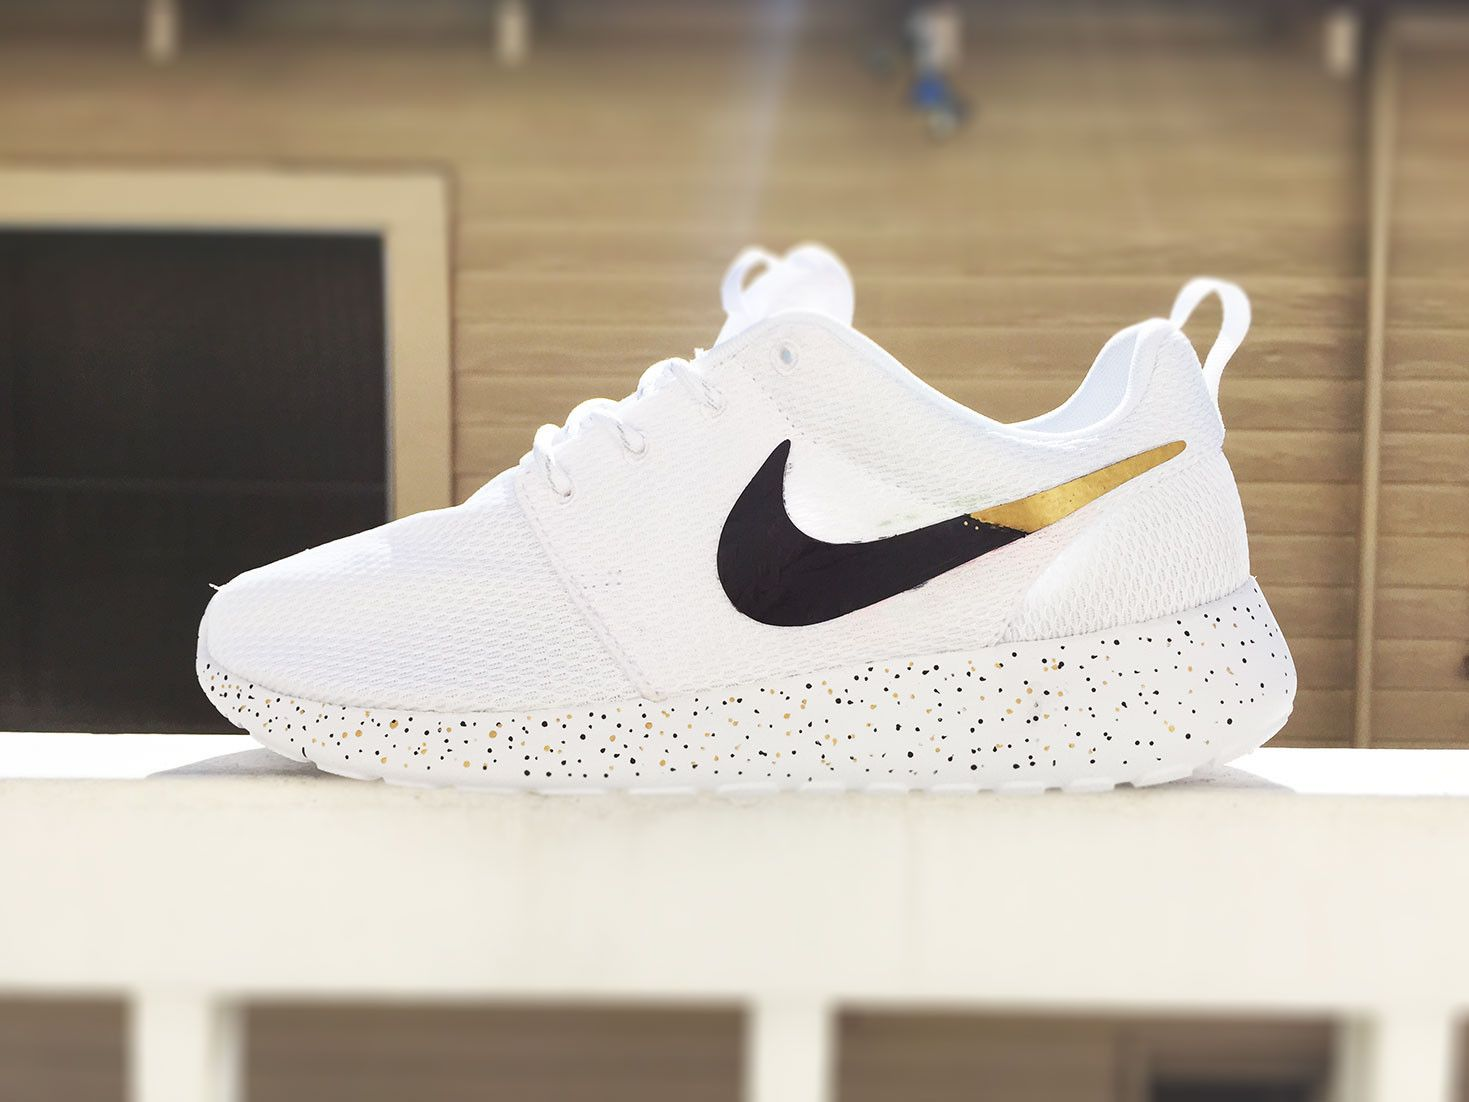 huge discount 9ccd0 6cd30 Custom Nike Roshe Run sneakers for women, All white, Black and Gold,  Silver, specles, gold flakes, love, fashionable design